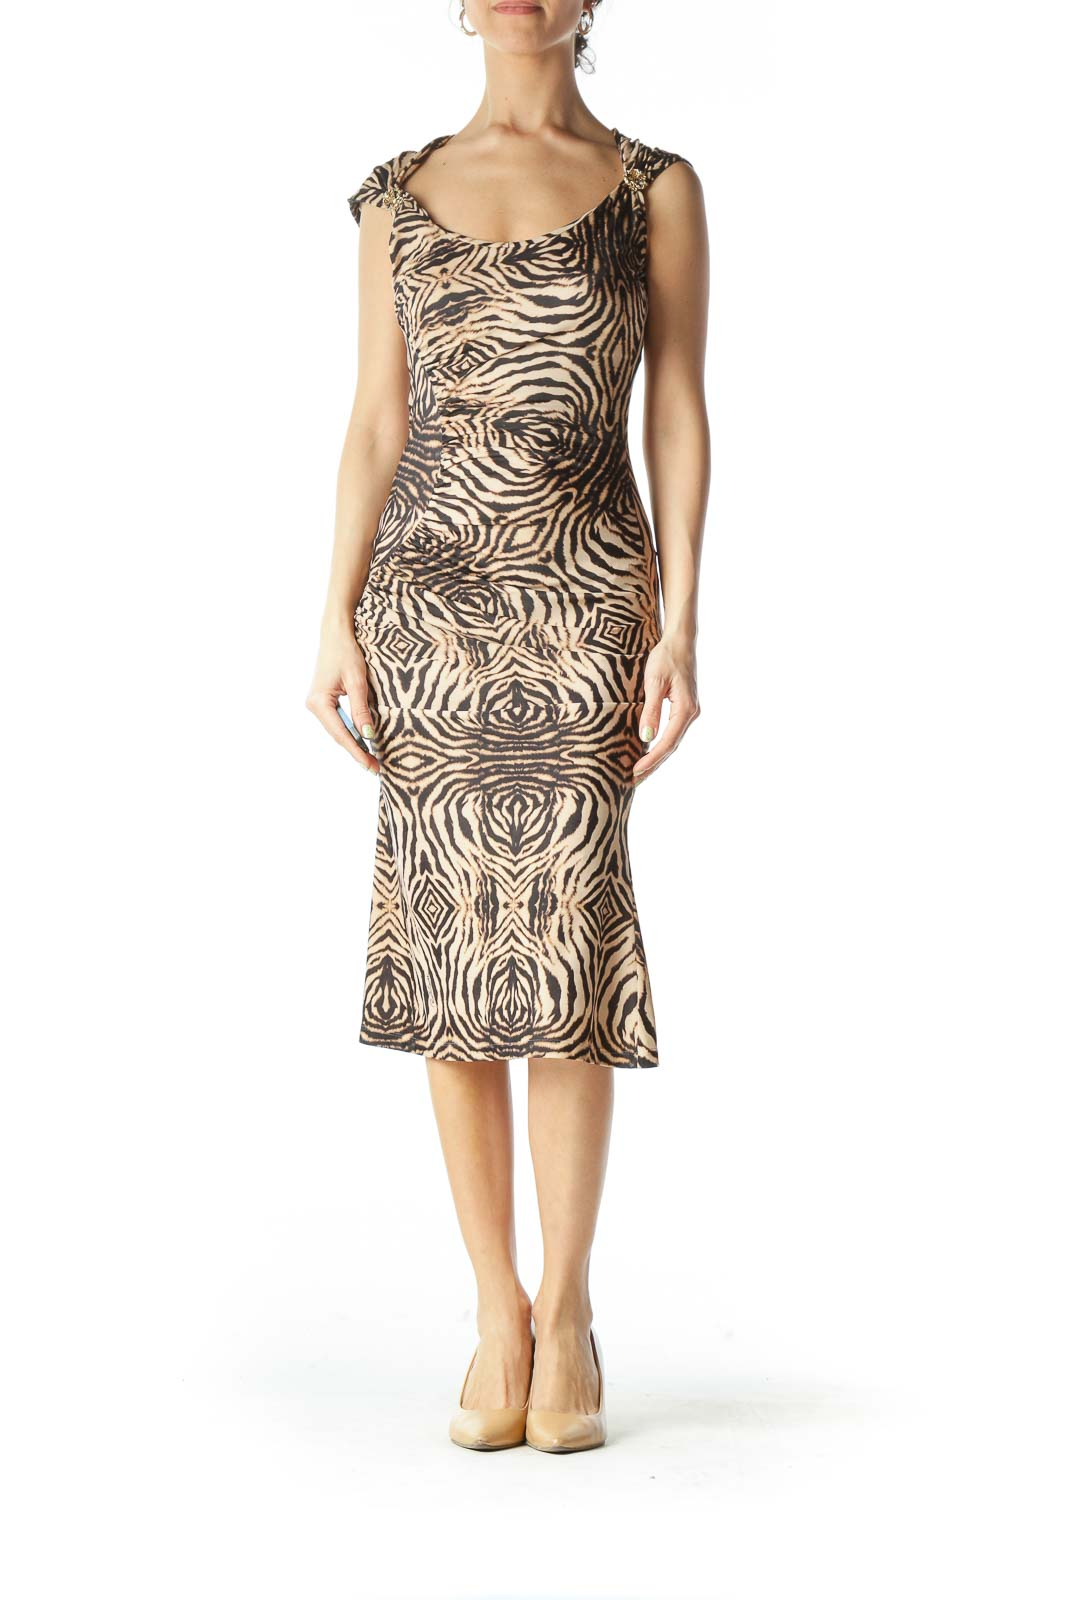 Brown Animal Print Cocktail Dress